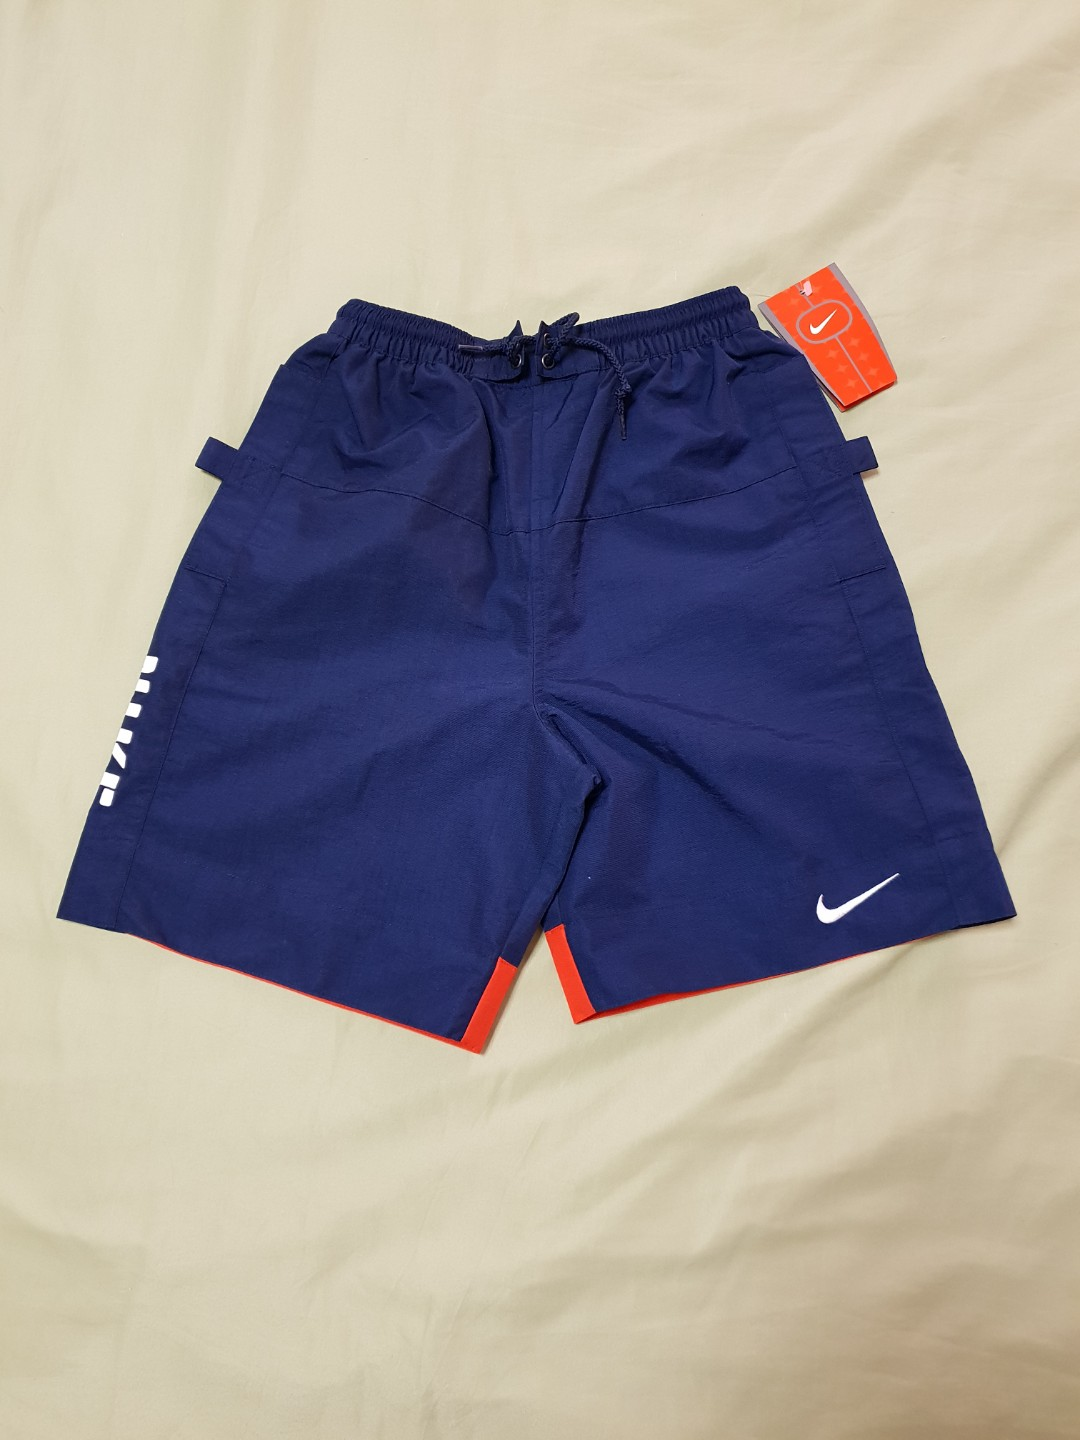 944abb78a Nike Boys Dark Blue Shorts, Size: S, Kid's Clothes, Sports, Sports ...